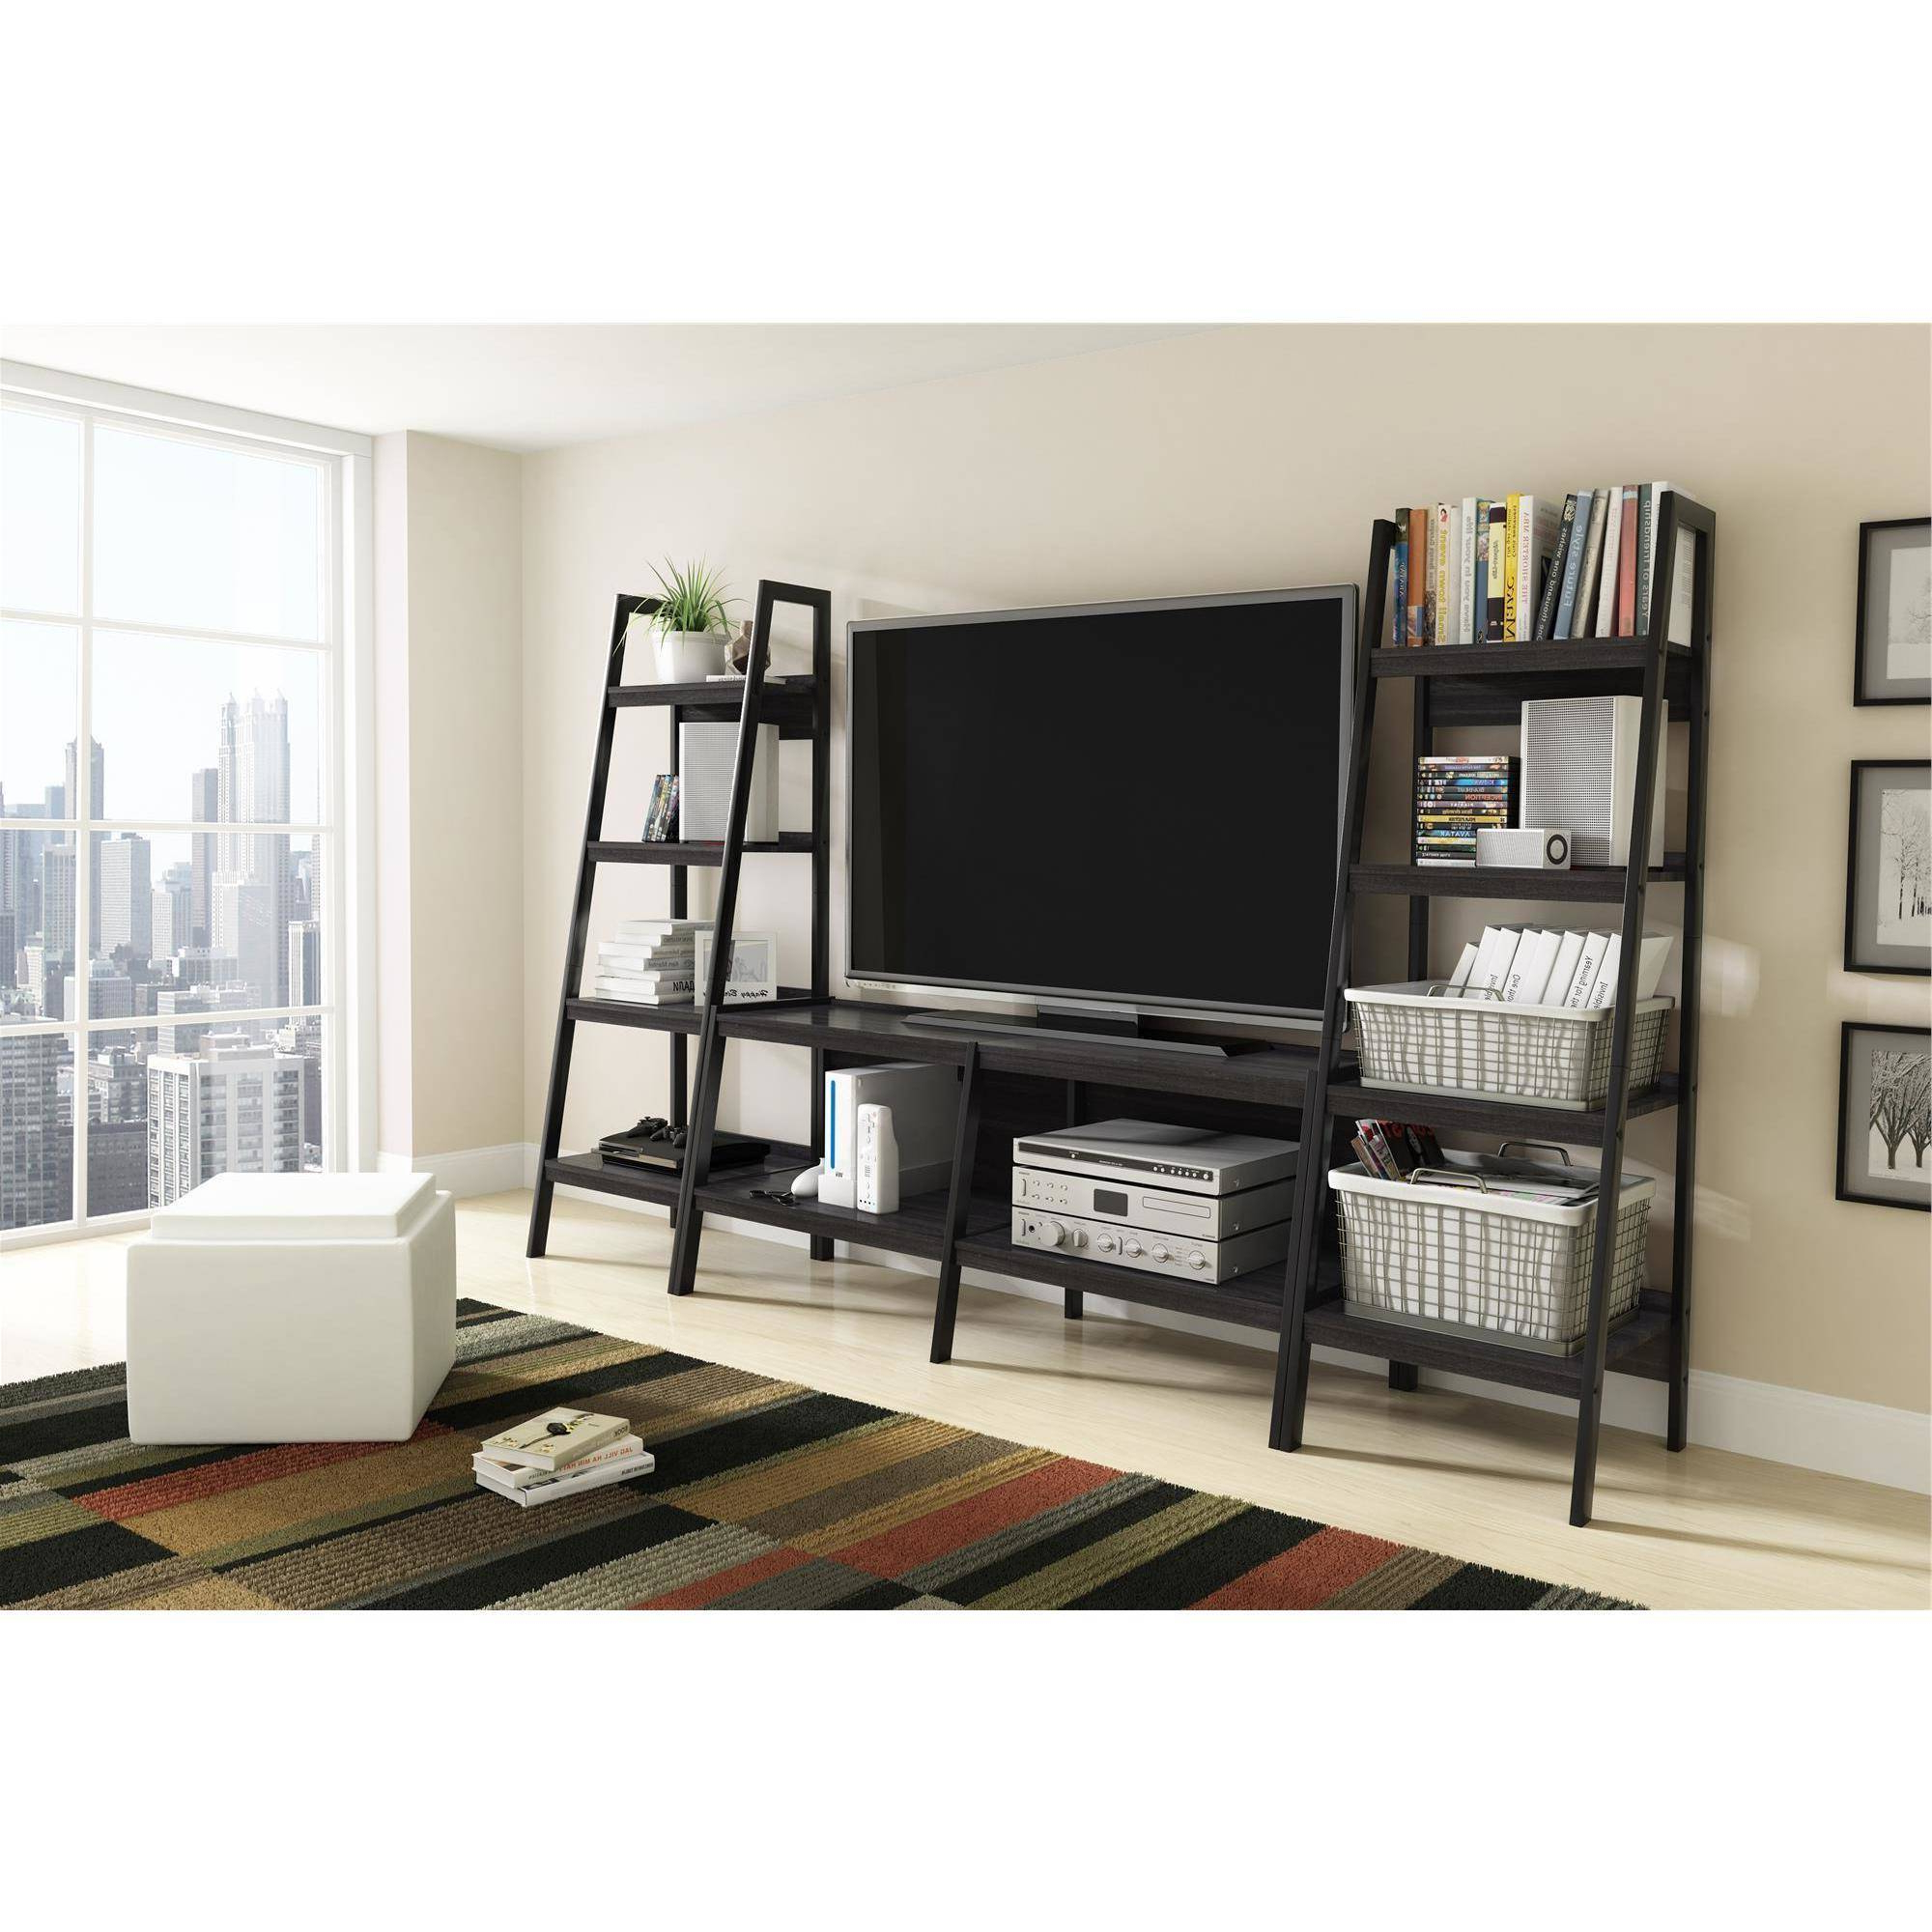 Best And Newest Bookshelf And Tv Stand Set Ladder Bookcase 3 Piece Entertainment Pertaining To Tv Stands And Bookshelf (View 12 of 20)